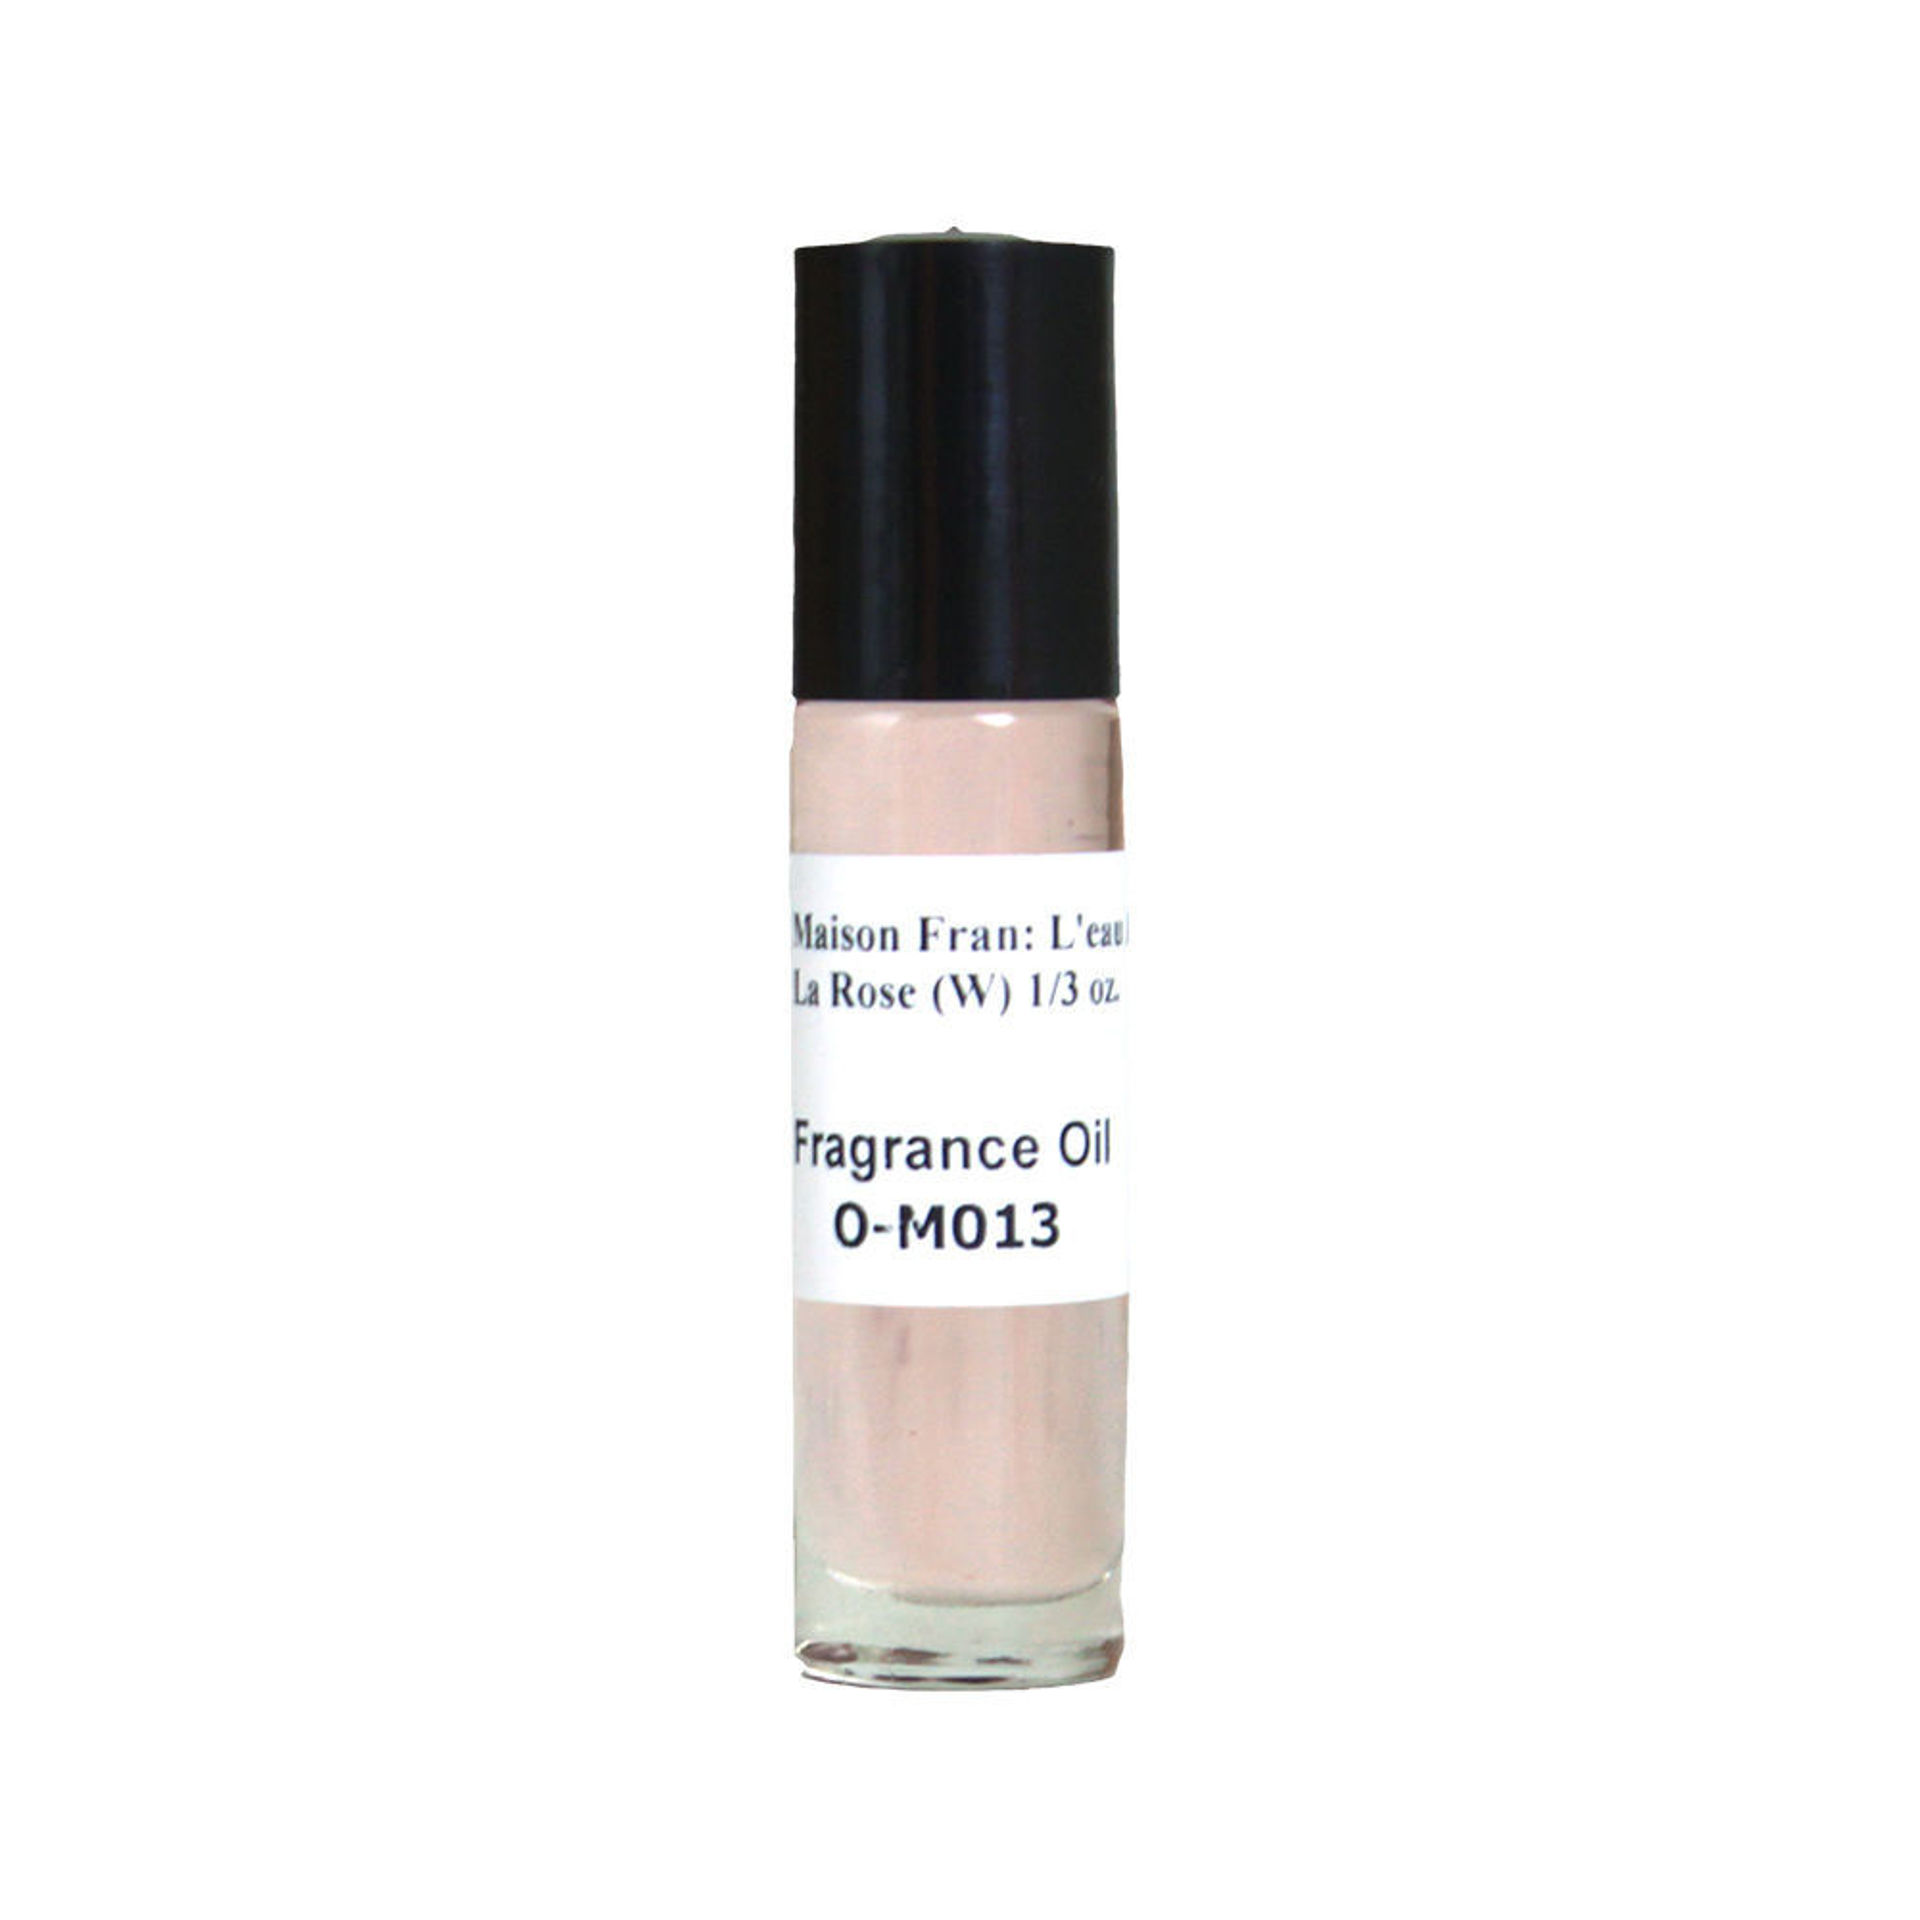 Picture of Maison Fran: L'eau A La Rose (W) 1/3 oz.